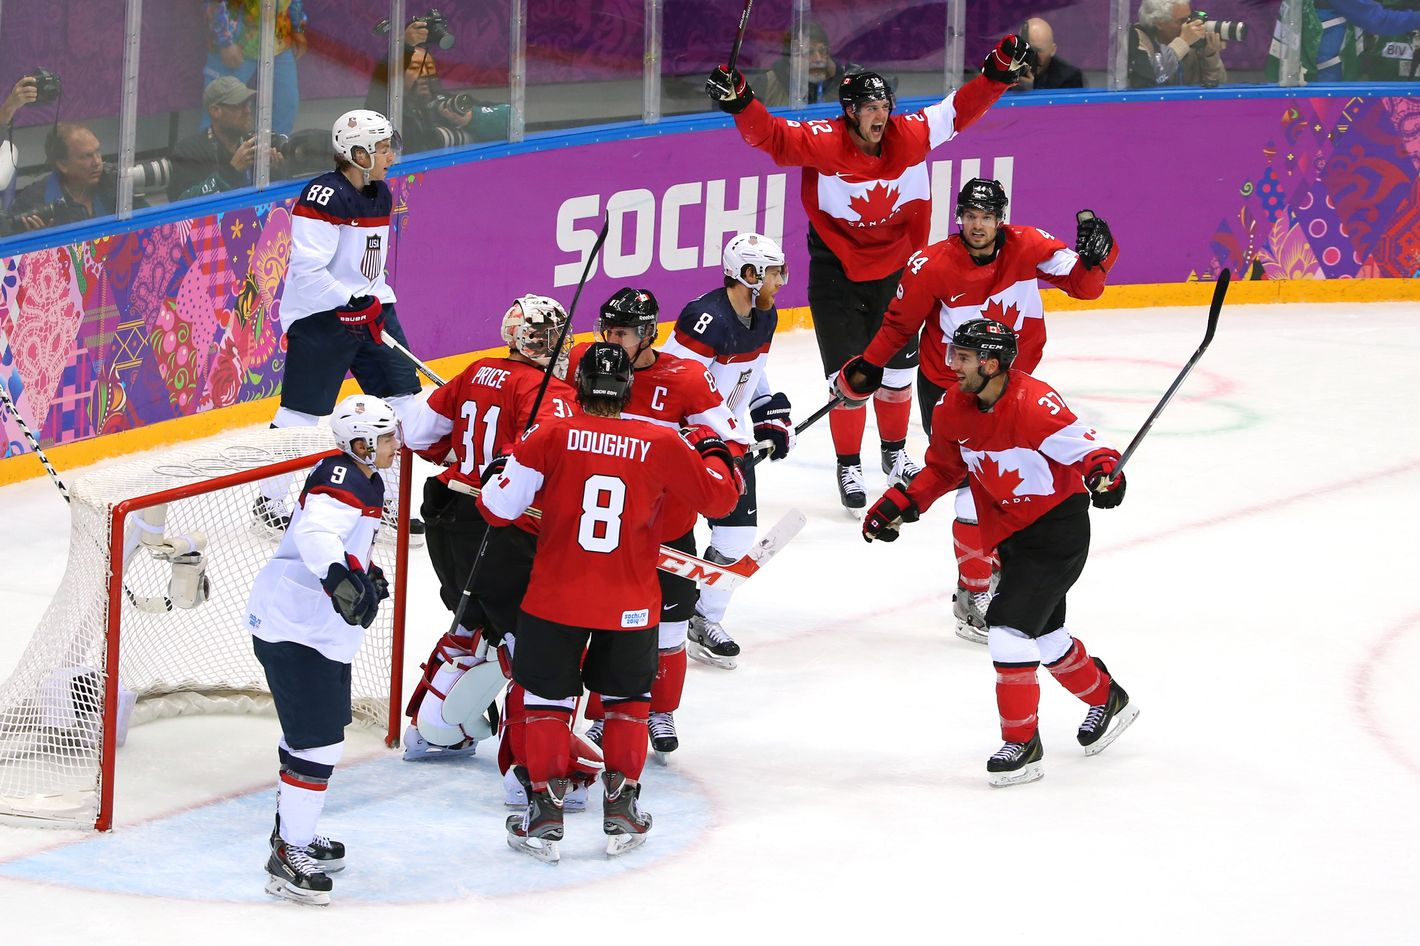 Patrick Kane #88 and Zach Parise #9 of the United States react as Carey Price #31, Drew Doughty #8 and Sidney Crosby #87 of Canada celebrate after defeating the United States 1-0 during the Men's Ice Hockey Semifinal Playoff on Day 14 of the 2014 Sochi Winter Olympics at Bolshoy Ice Dome on February 21, 2014 in Sochi, Russia.